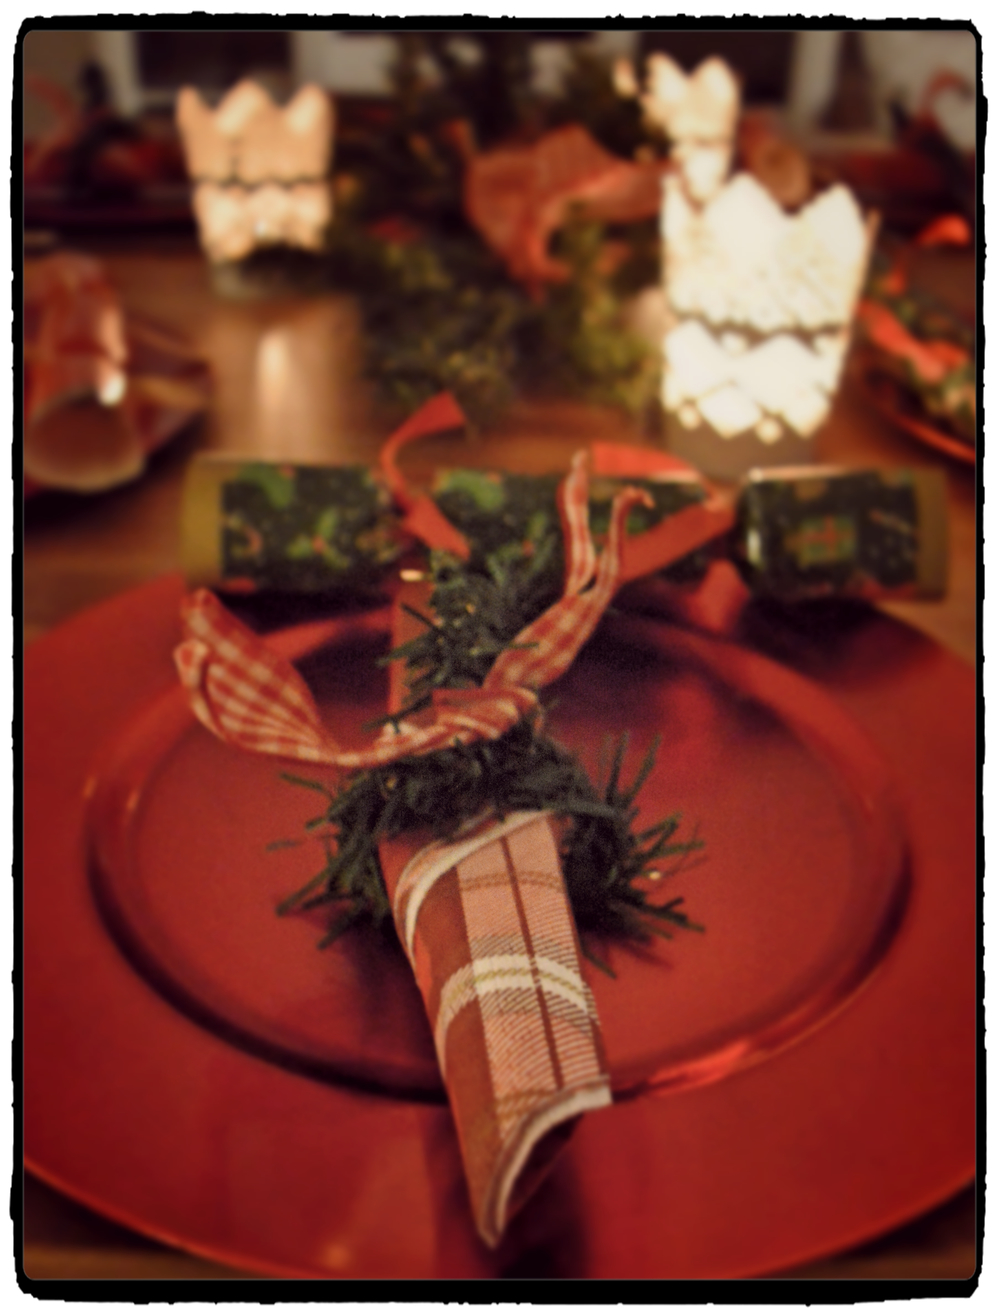 Simple napkin holders made by us pine stems and ribbons